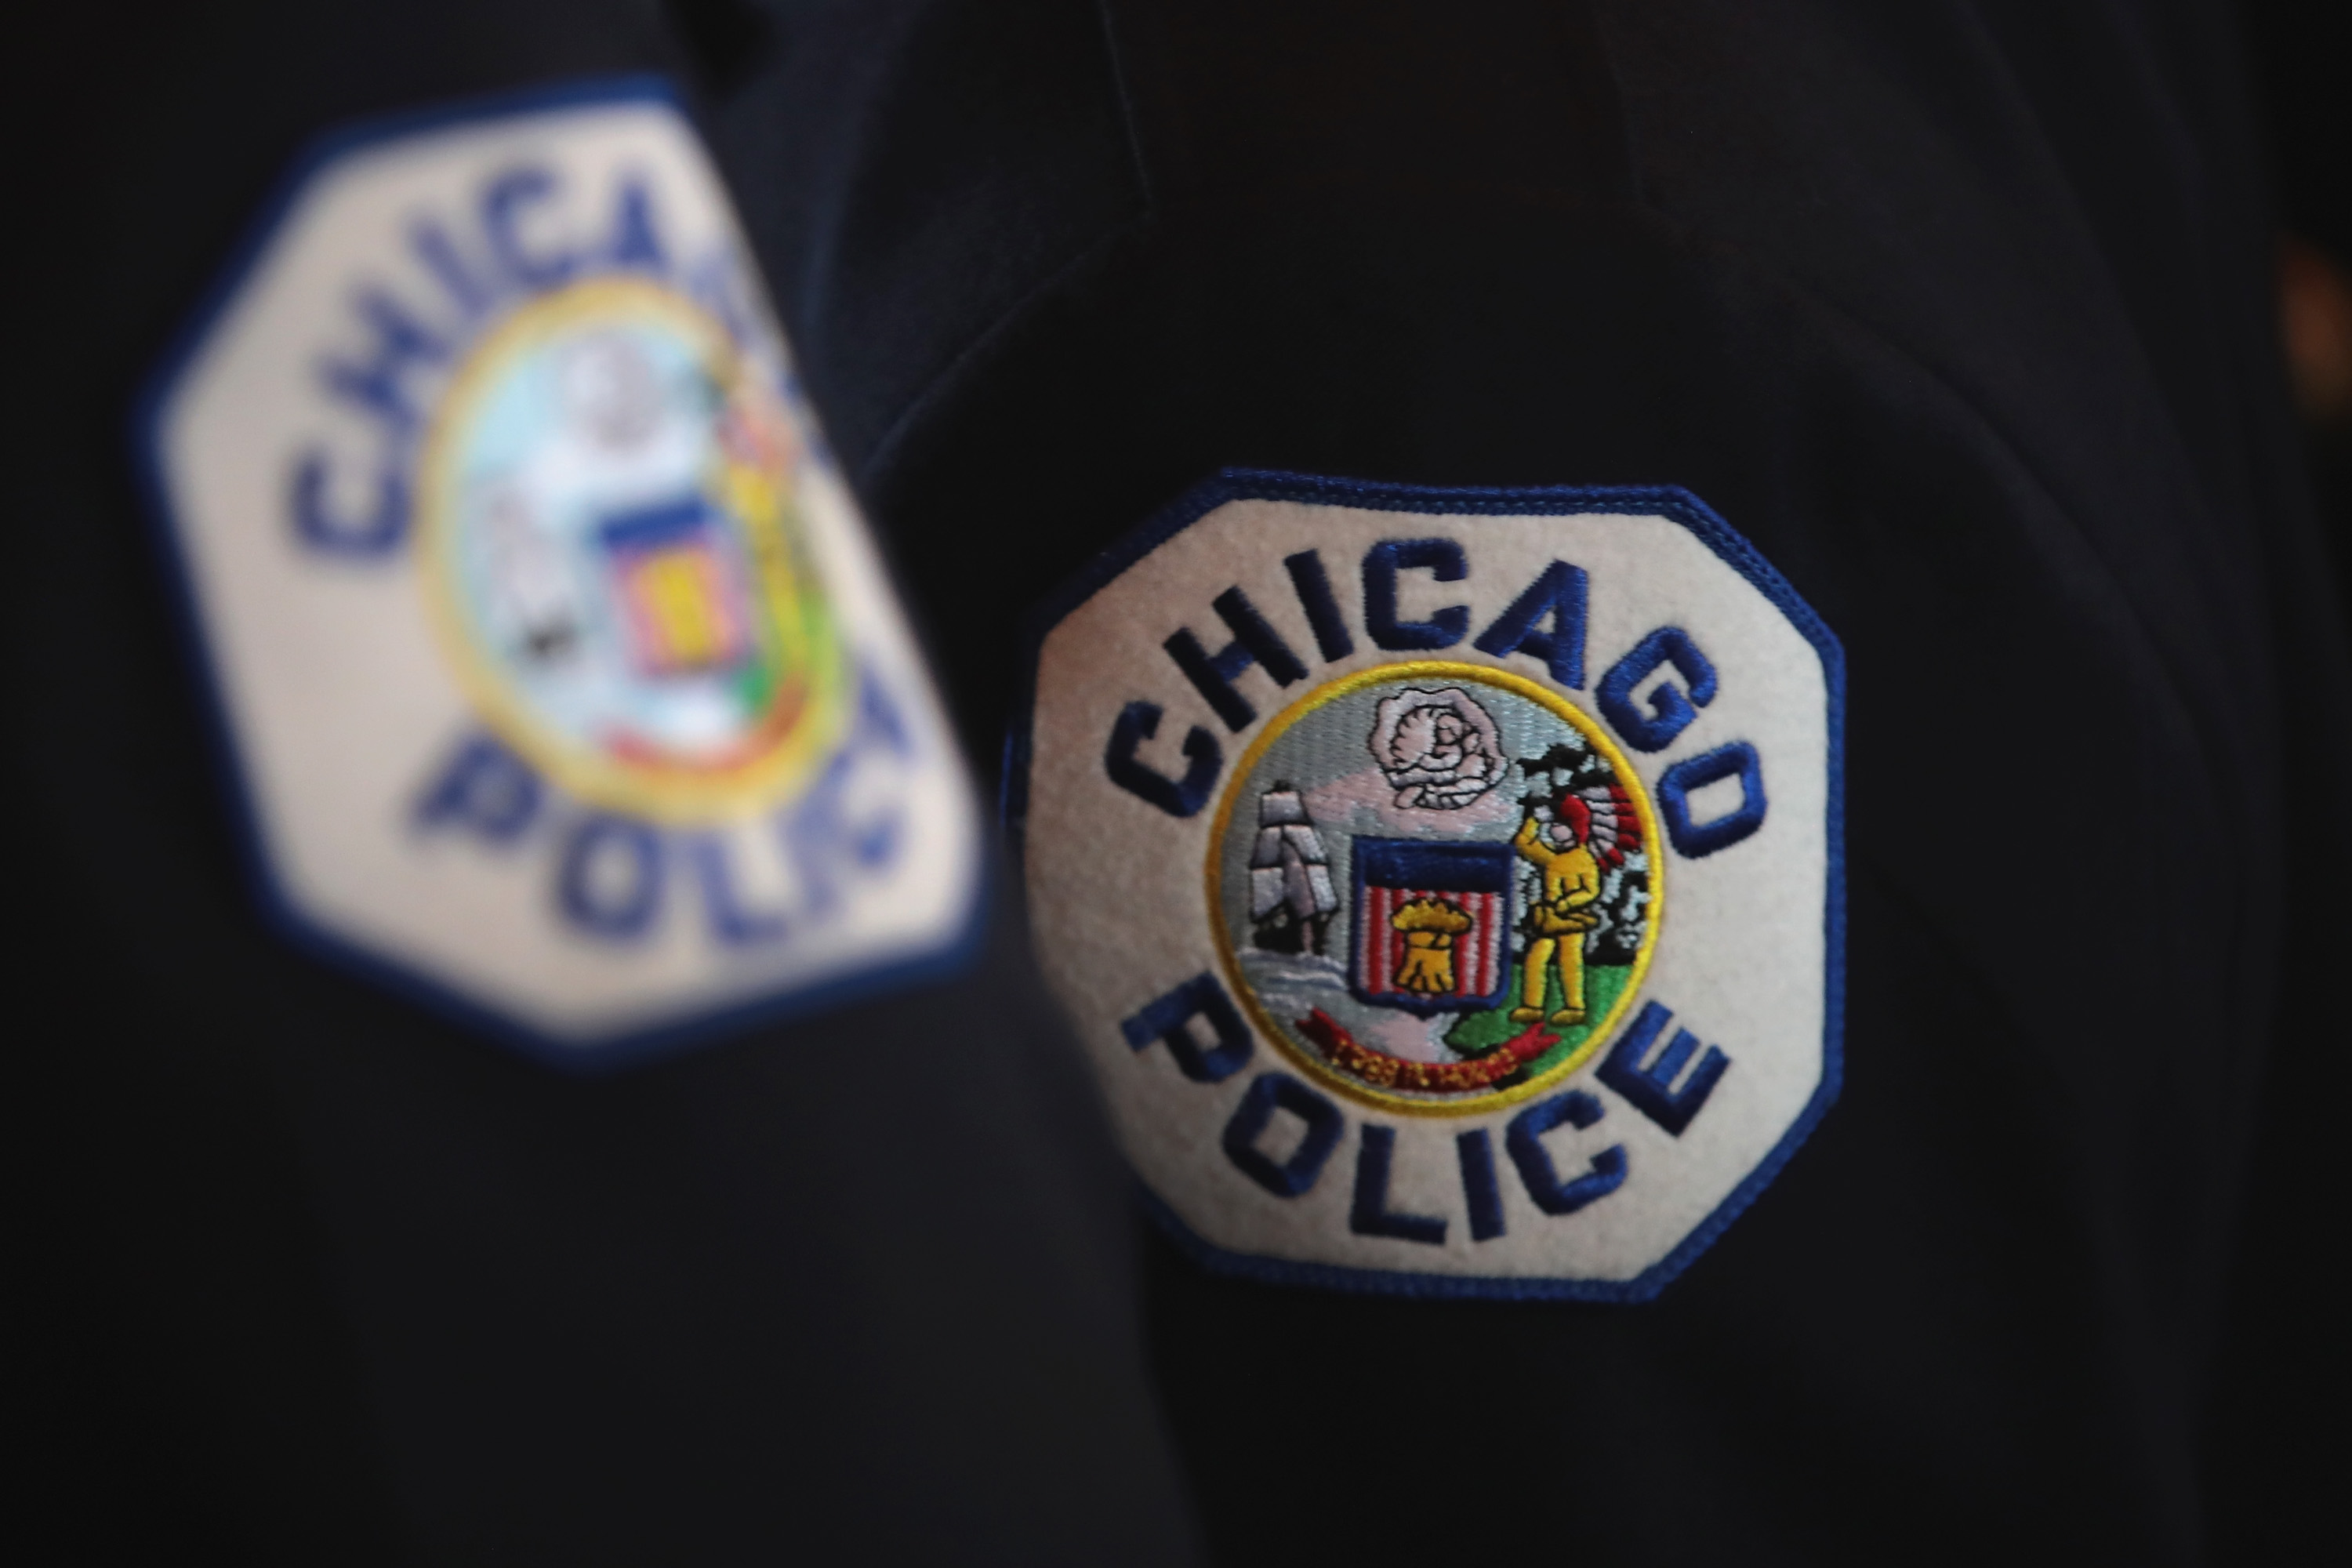 File photo. Chicago police officers attend a graduation and promotion ceremony in the Grand Ballroom on Navy Pier on June 15, 2017 in Chicago, Illinois.